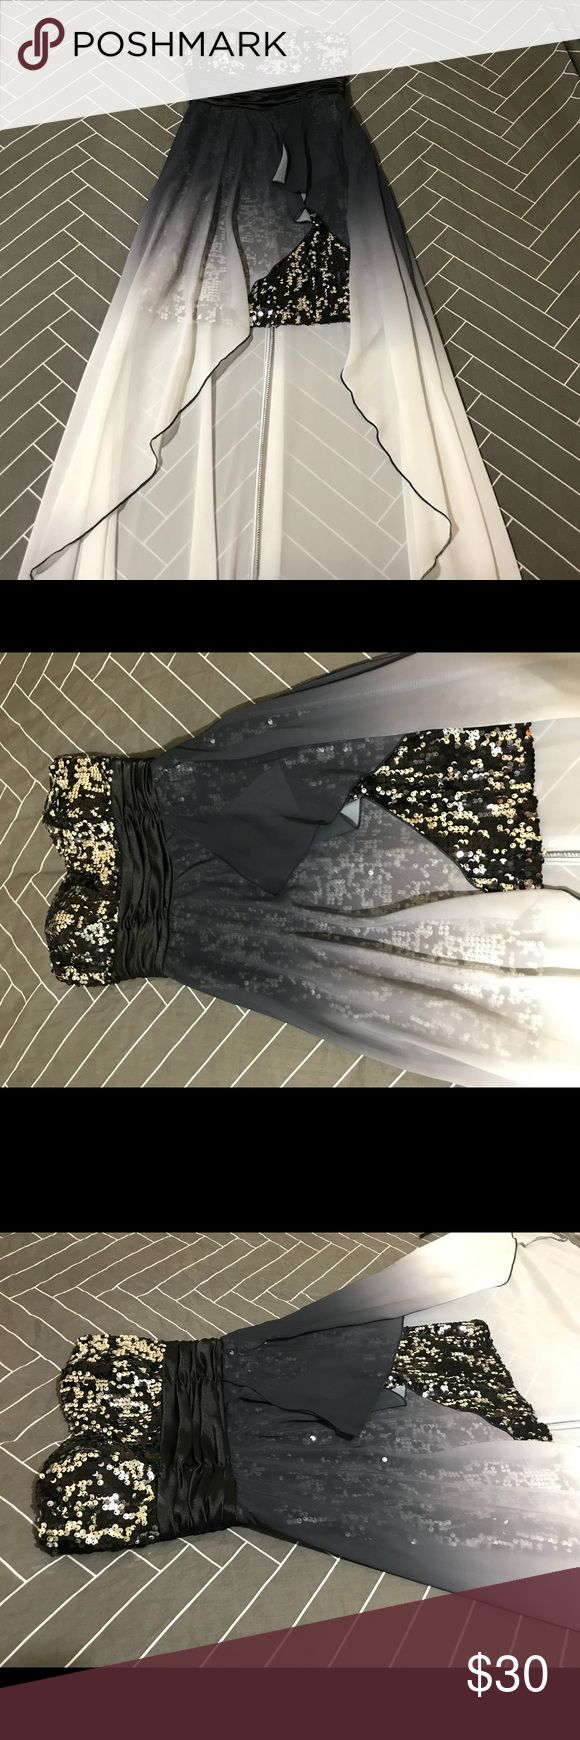 """Black and White Ombré High-Low Prom Dress Stunning strapless dress for prom or homecoming! The train has an ombré from black to white. I wore it once for senior prom with the black heels also in my closet!   Inside dress - 25.5"""" From top of dress to bottom of train - 46"""" Speechless Dresses Prom #blackhighheelsforhomecoming"""